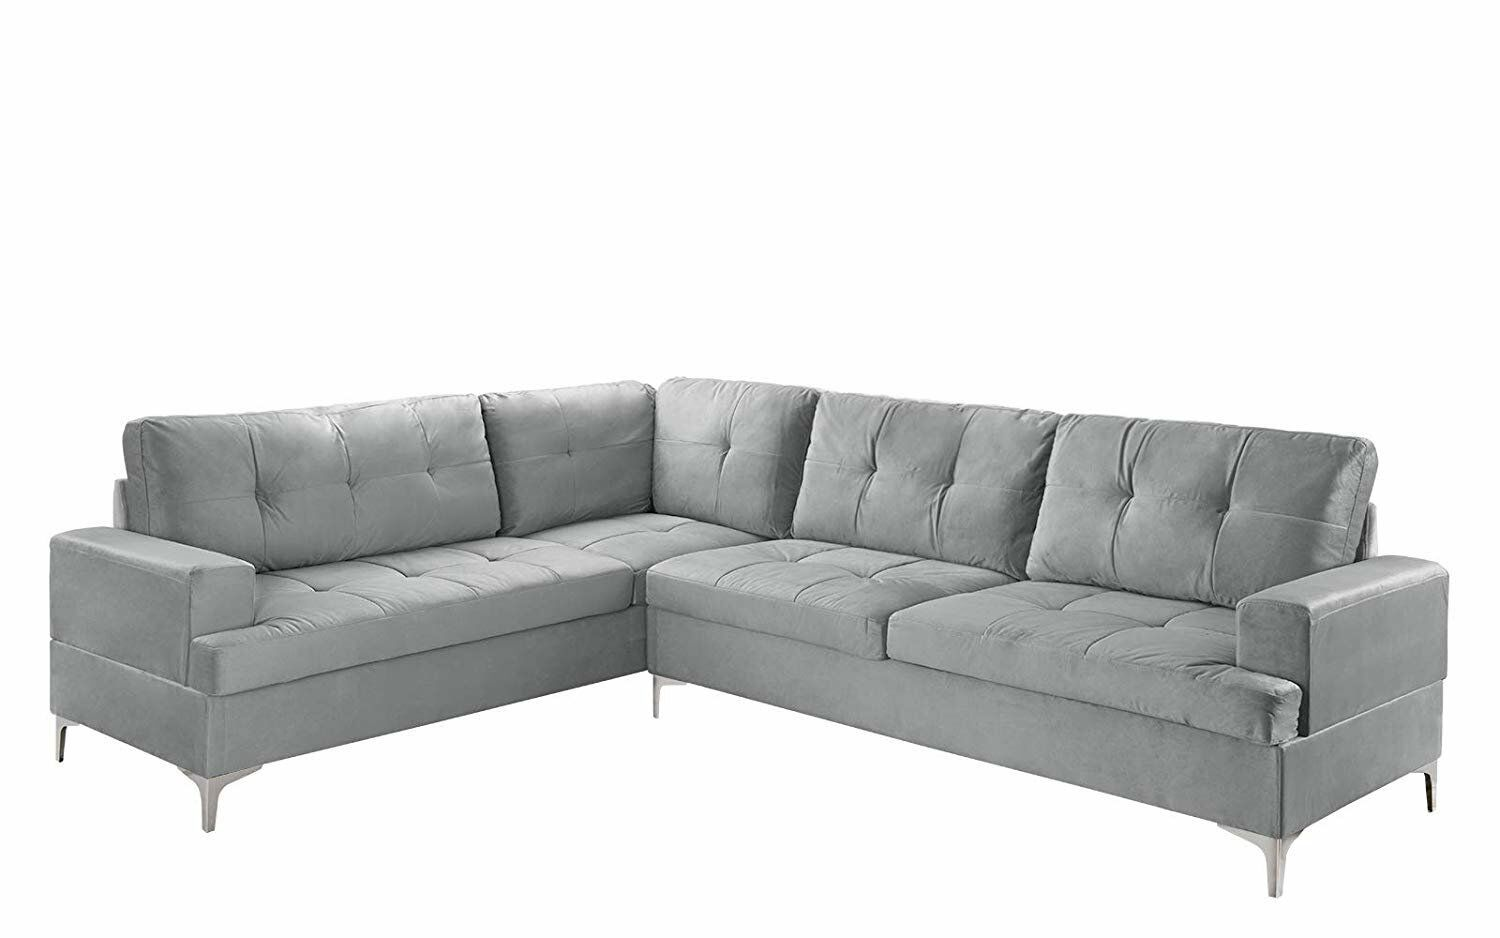 Large Tufted Velvet Sectional Sofa Modern Living Room L Shape Couch Grey